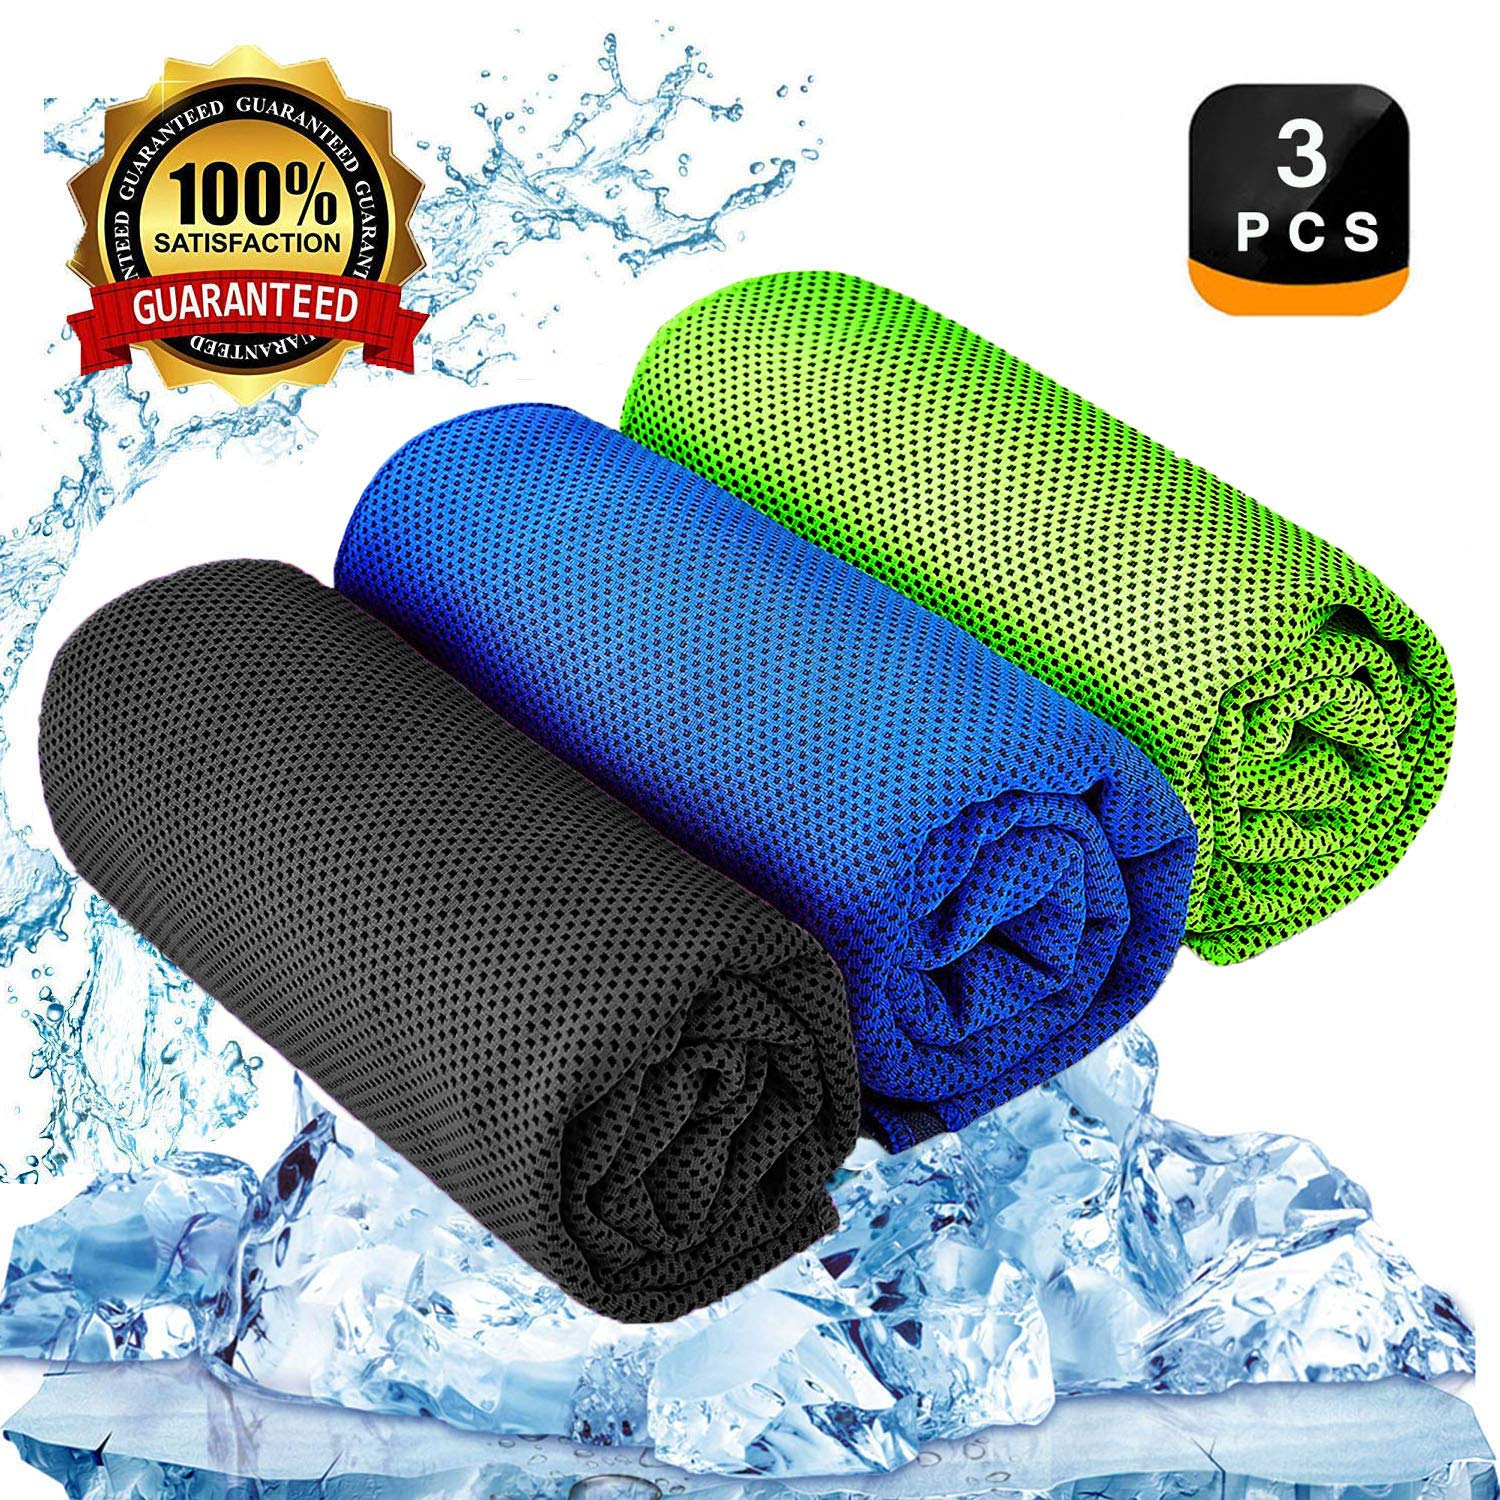 YQXCC Cooling Towel 3 Pcs (47''x12'') Microfiber Towel for Instant Cooling Relief, Cool Cold Towel for Yoga Golf Travel Gym Sports Camping Football & Outdoor Sports (Dark Blue/Dark Gray/Green) by YQXCC